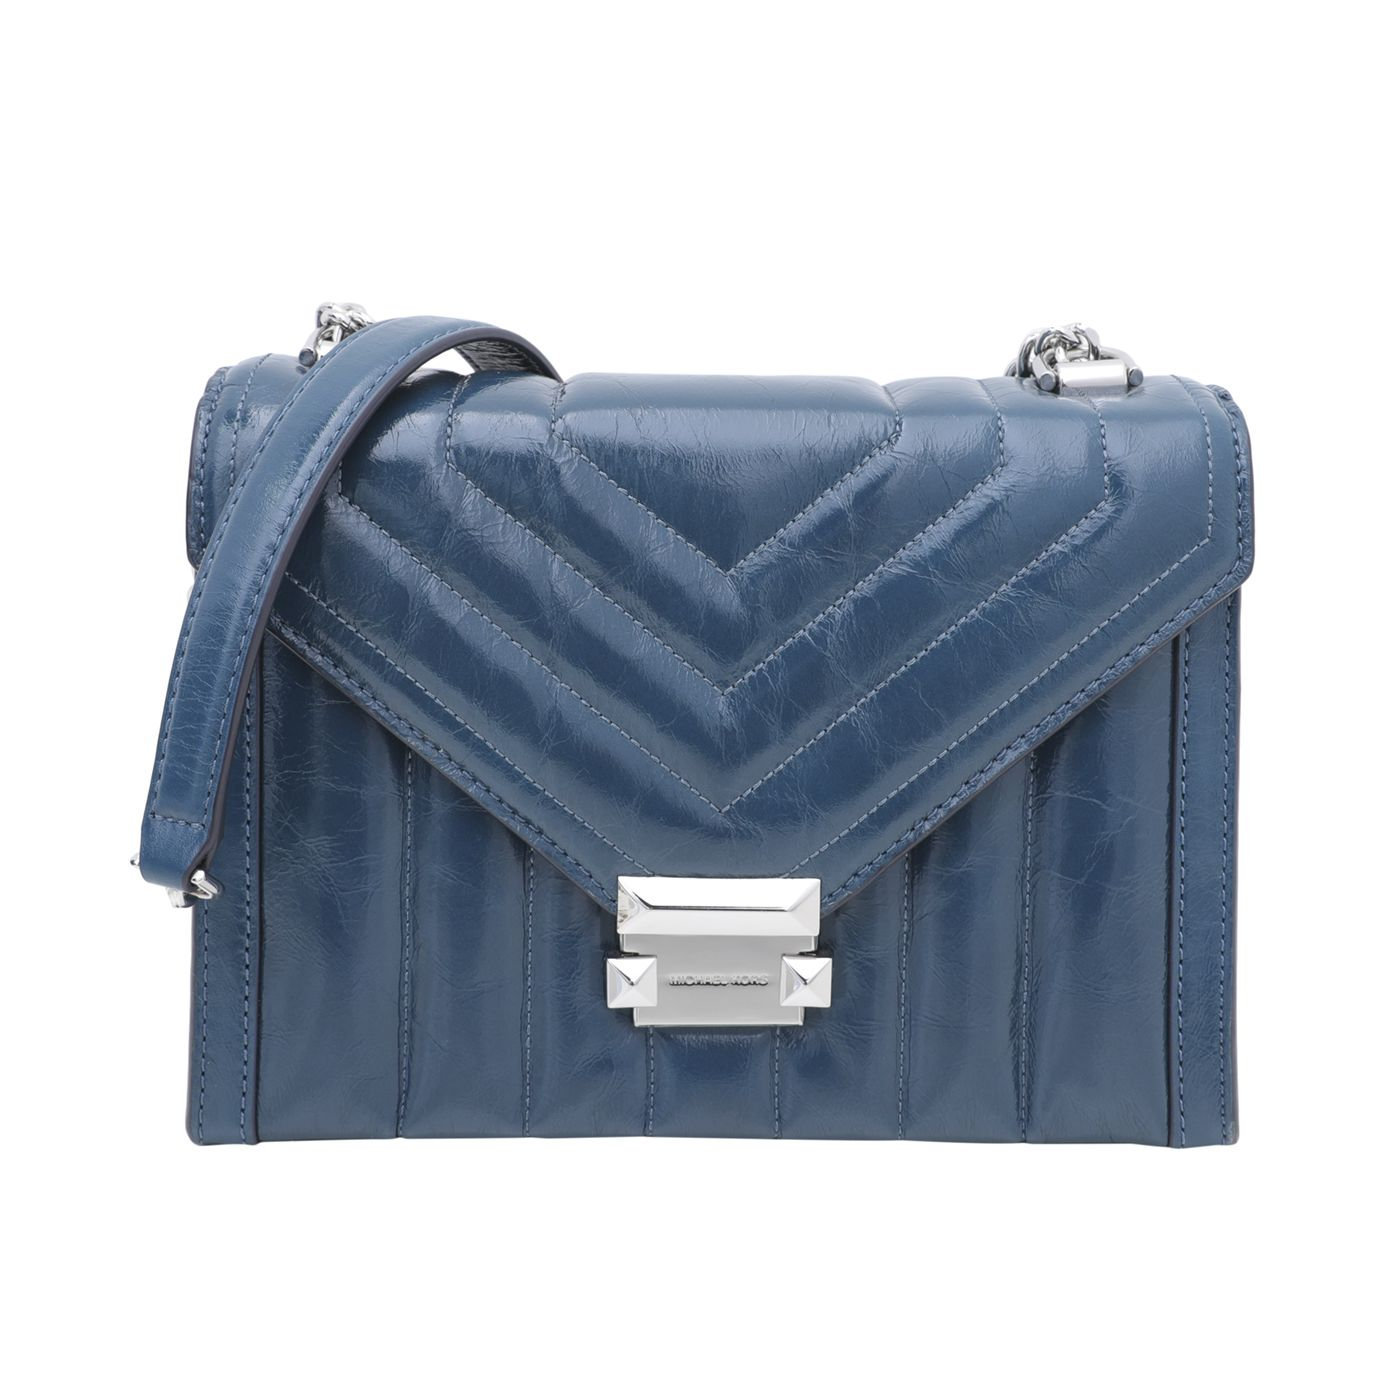 Michael Kors DK Chambray Quilted Whitney Convertible Shoulder Bag